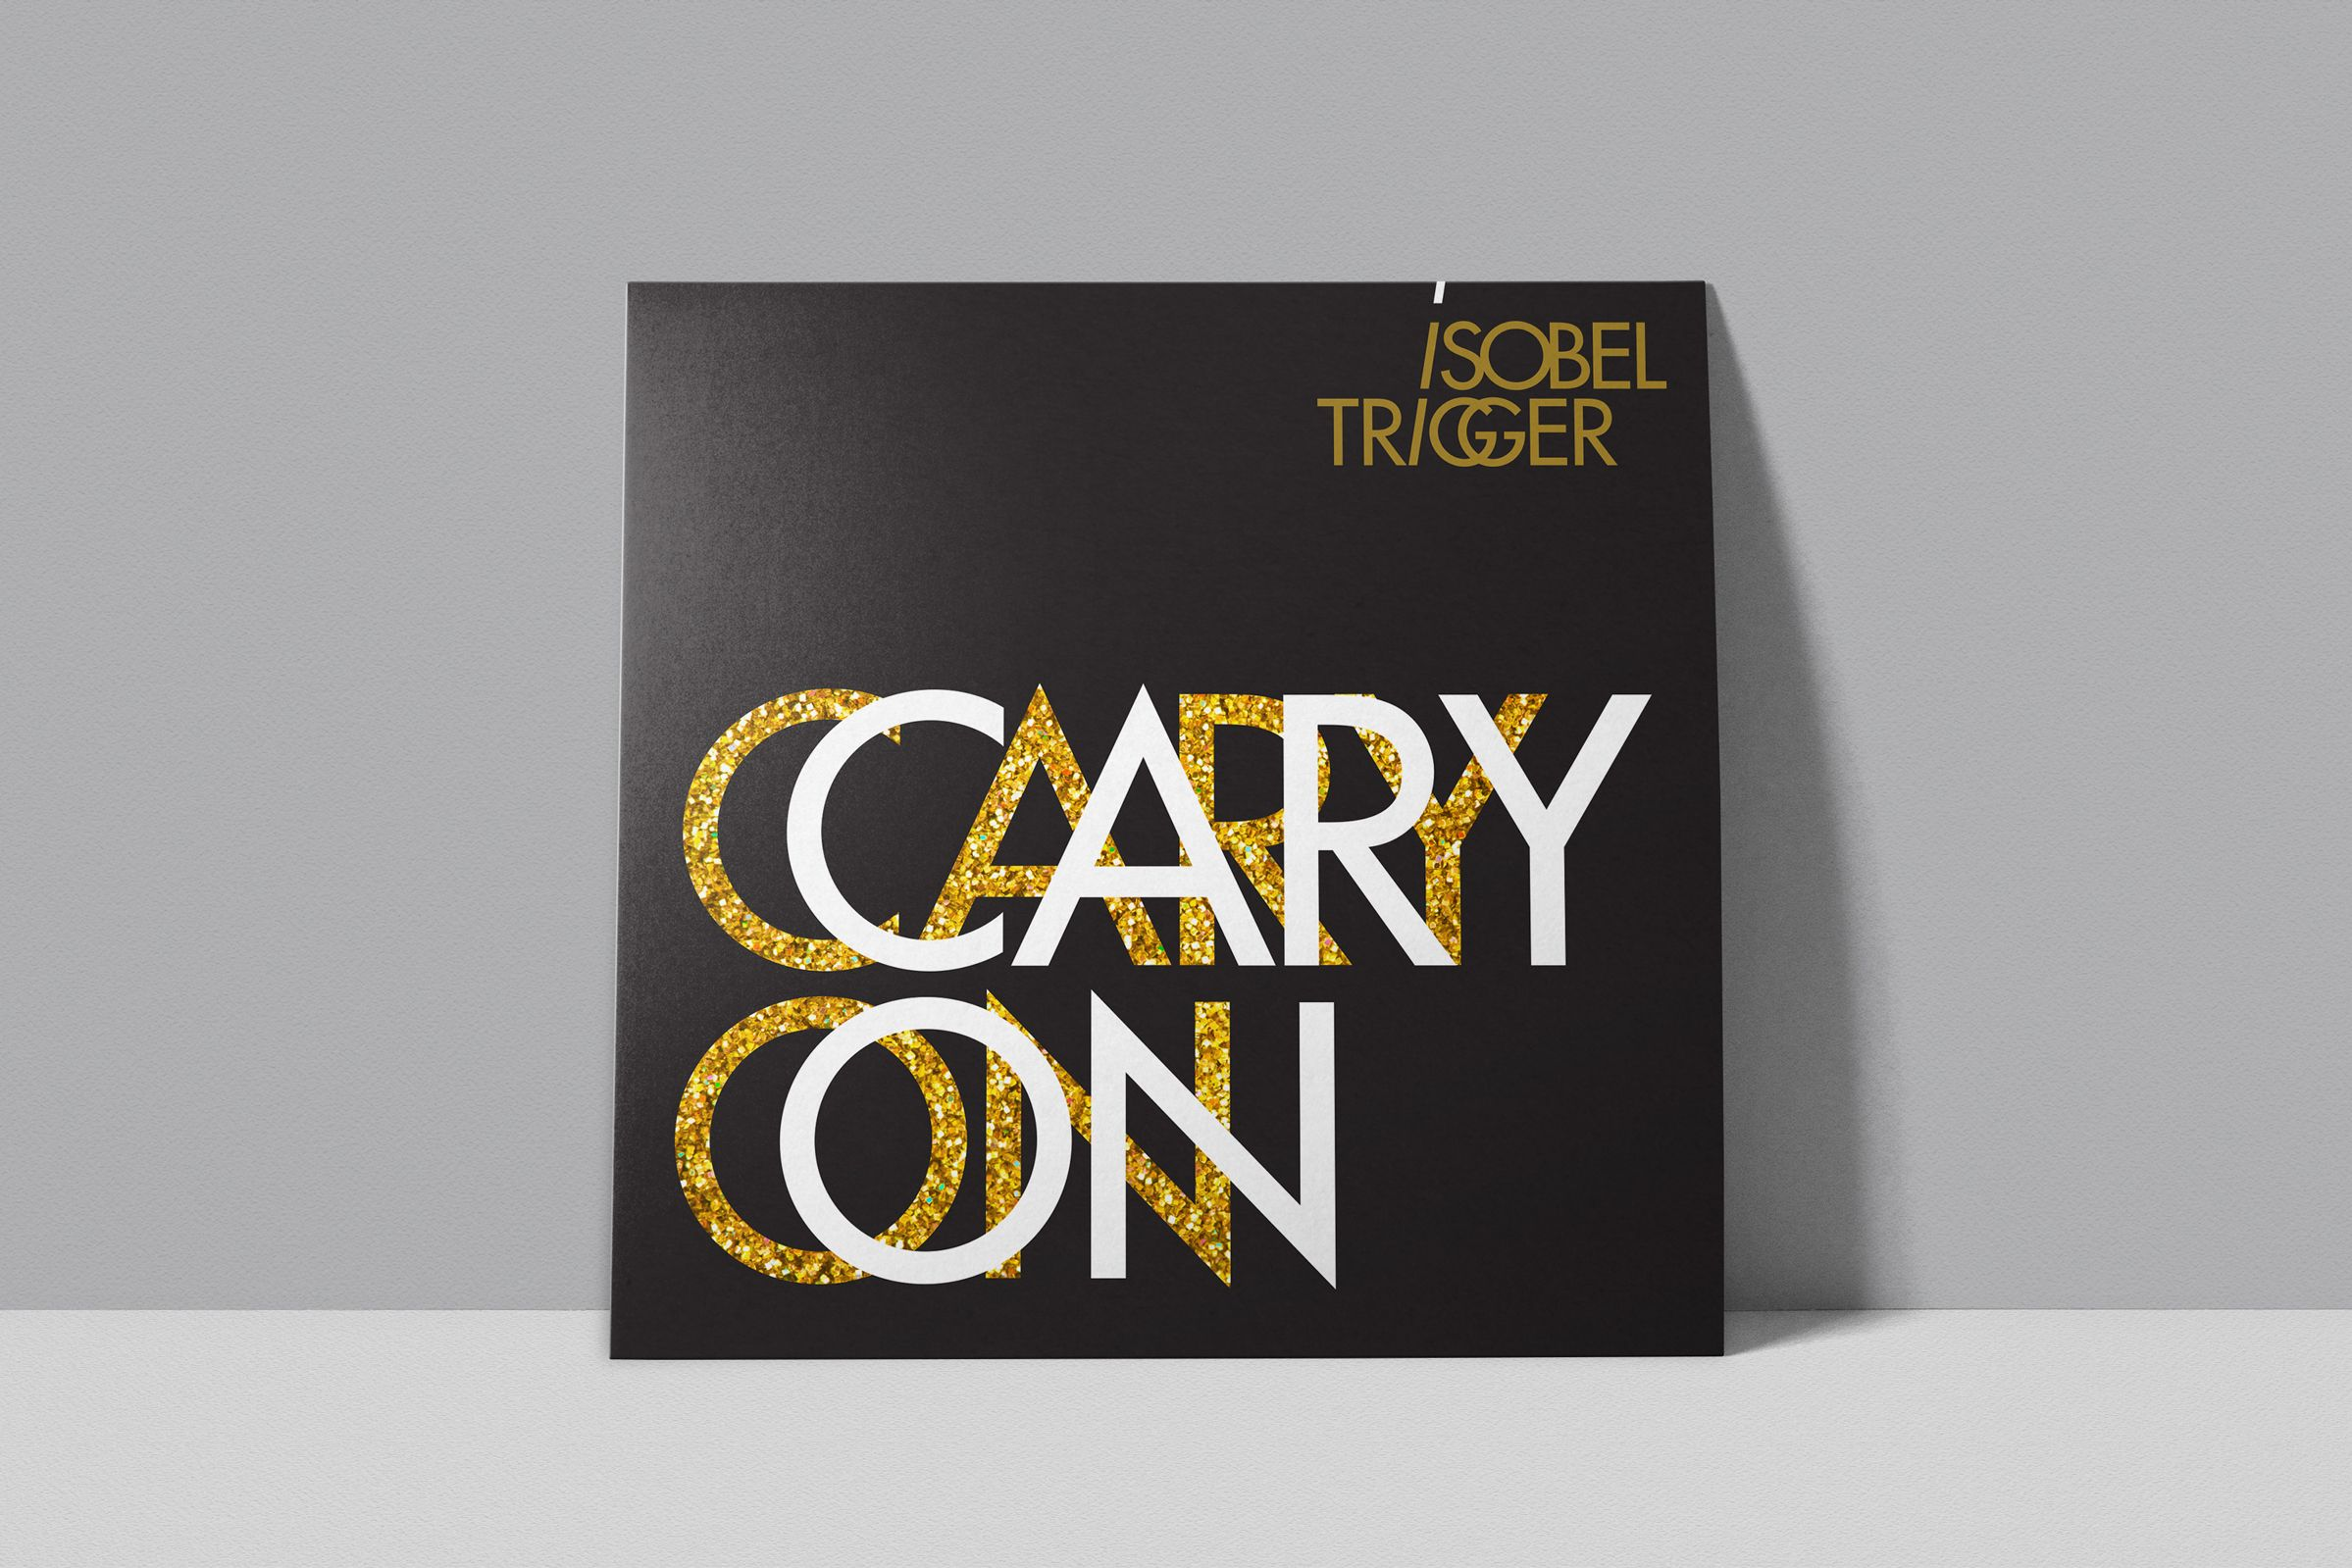 Album Cover for Isobel Trigger, a Canadian Rock Band by Ottawa Graphic Designer idApostle